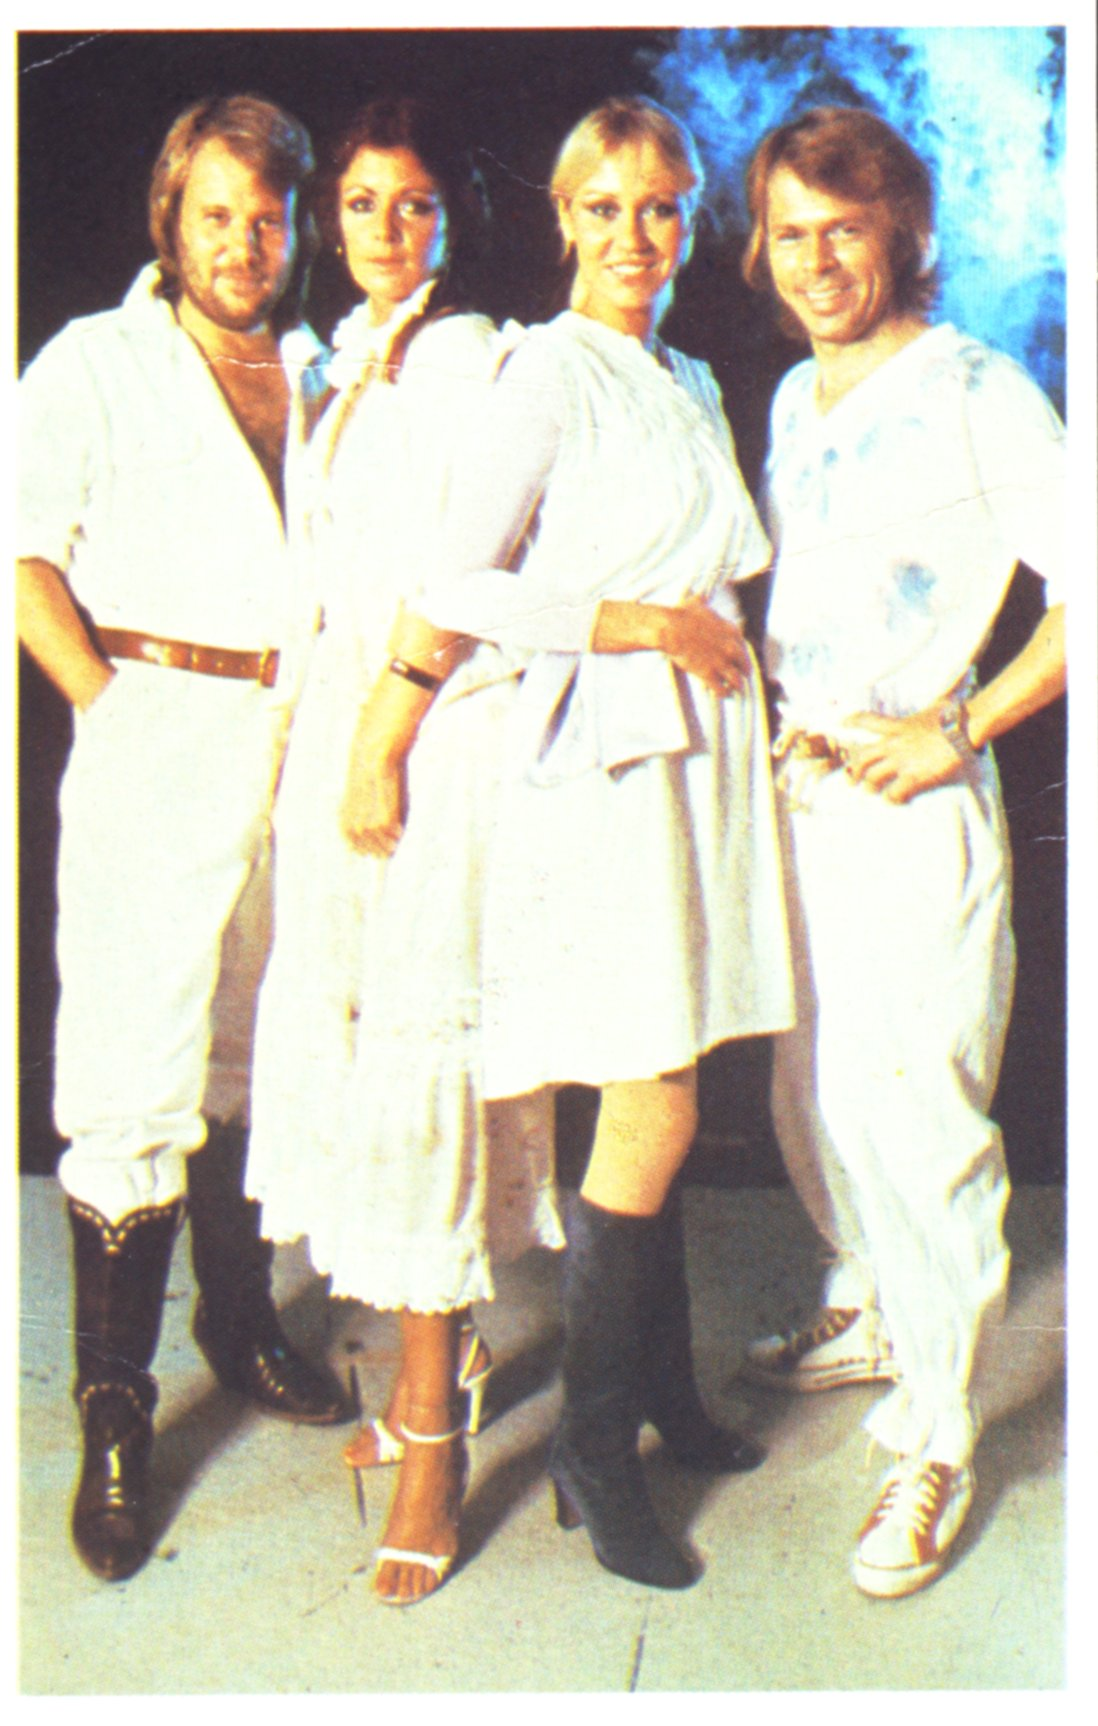 abba confectionary picture card (Barratts Compa